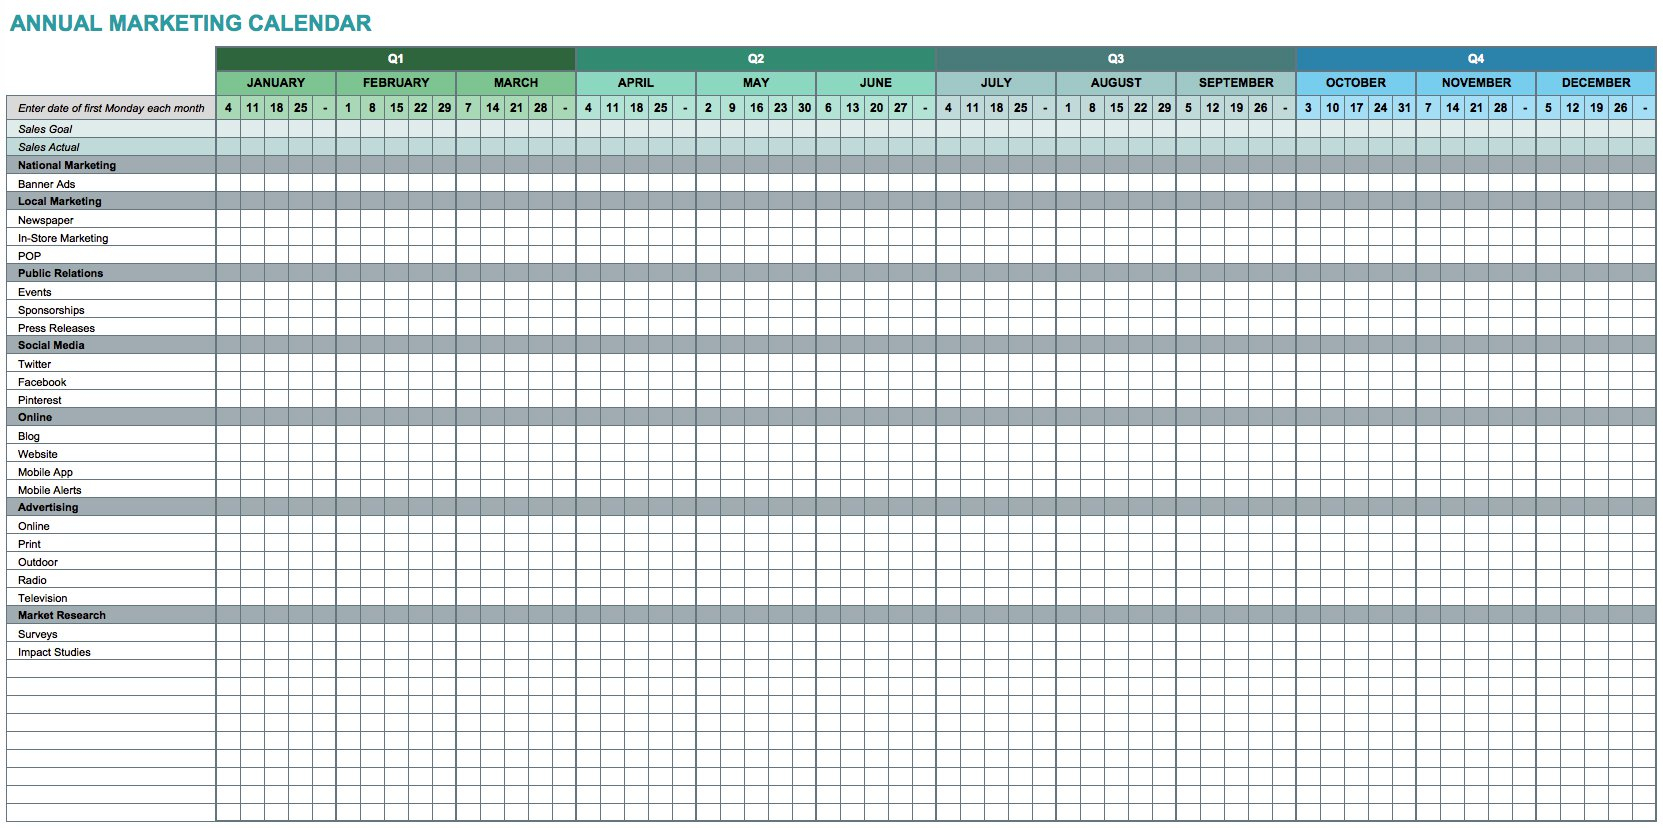 9 Free Marketing Calendar Templates For Excel - Smartsheet with Monthly Calendar Planner Excel Template